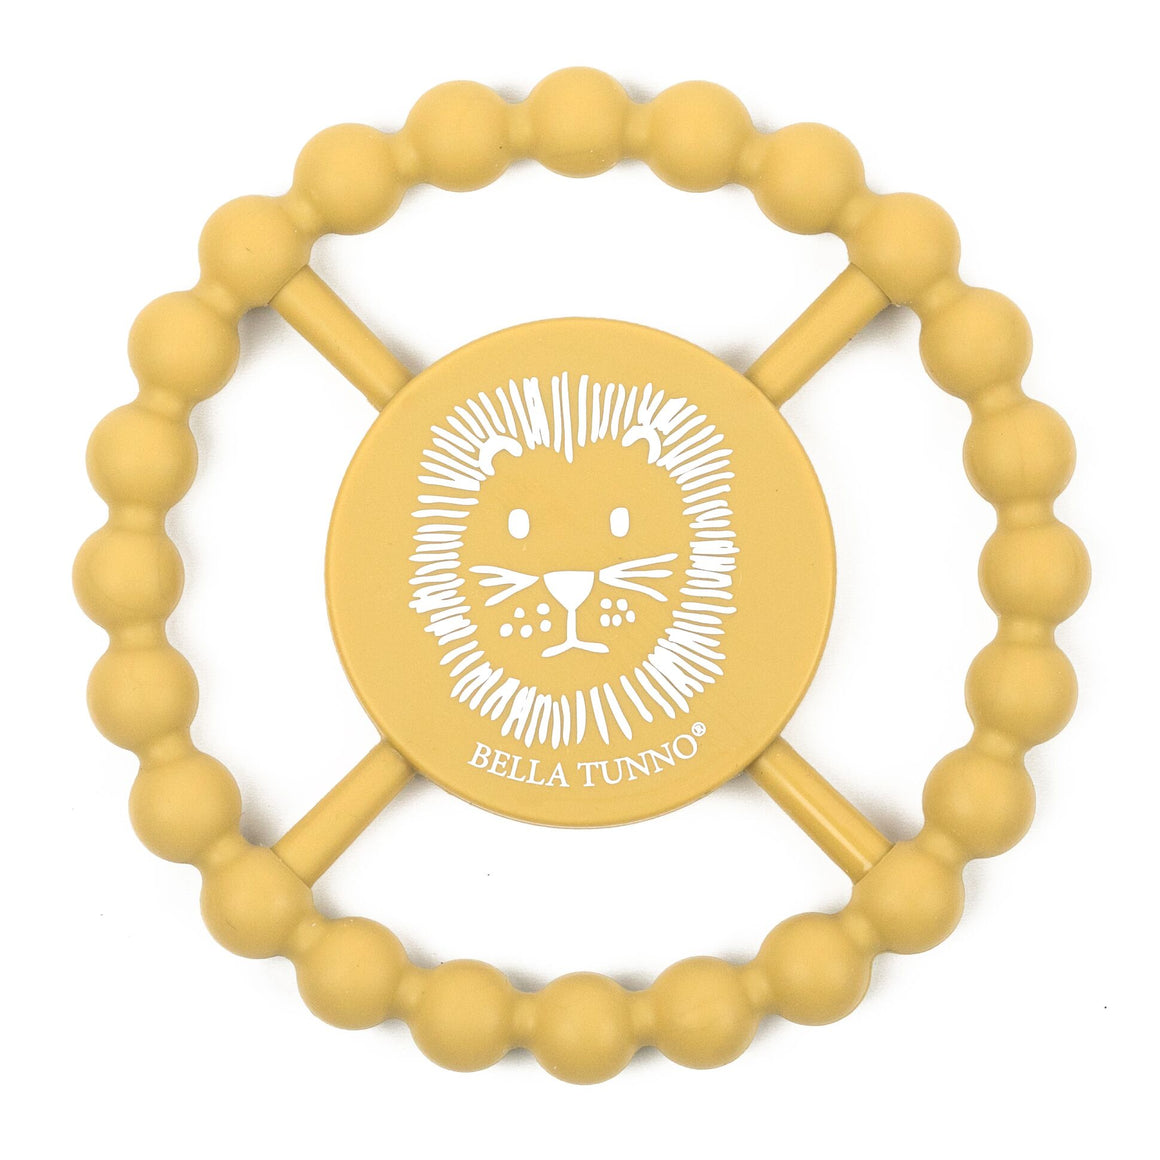 Easy grip 100% FDA Approved Food Grade Silicone Lion graphic ball teether in muted mustard yellow